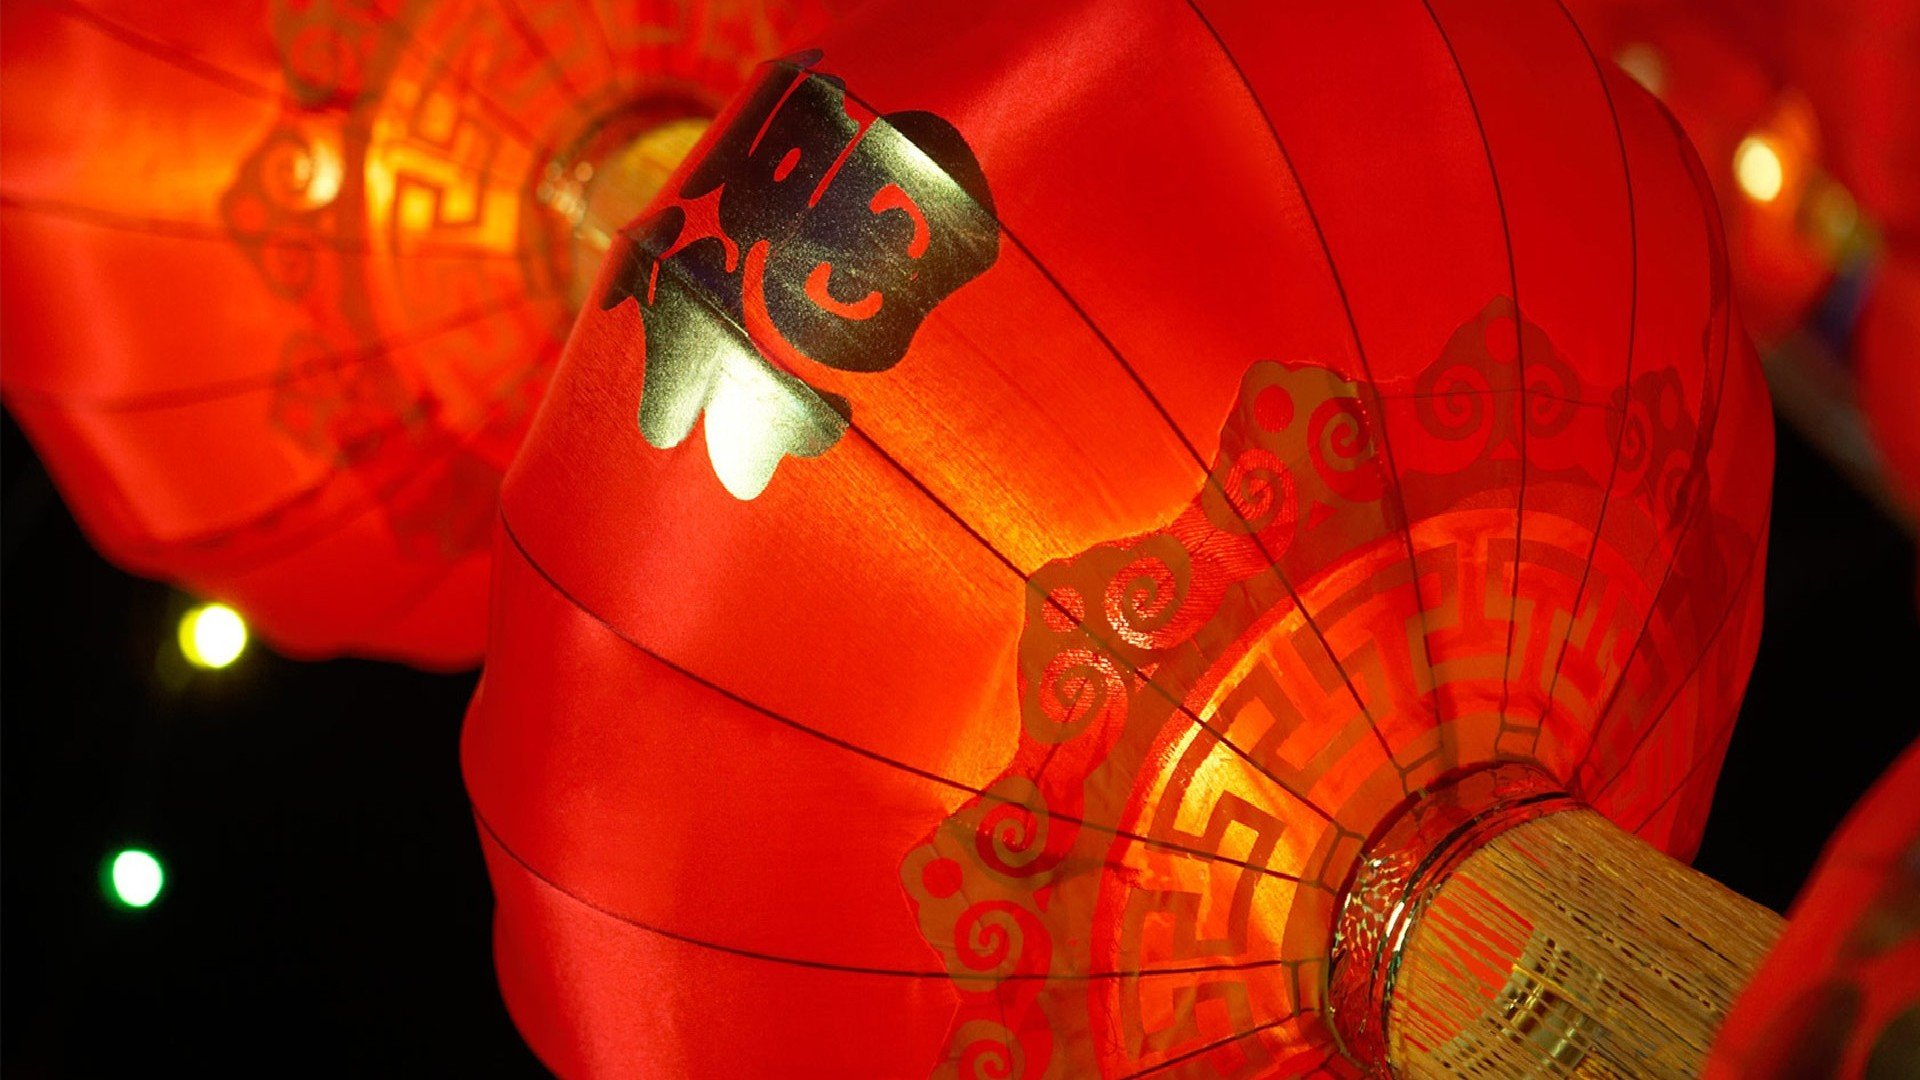 Free Download Chinese New Year Wallpaper ID156051 Hd 1920x1080 For Desktop